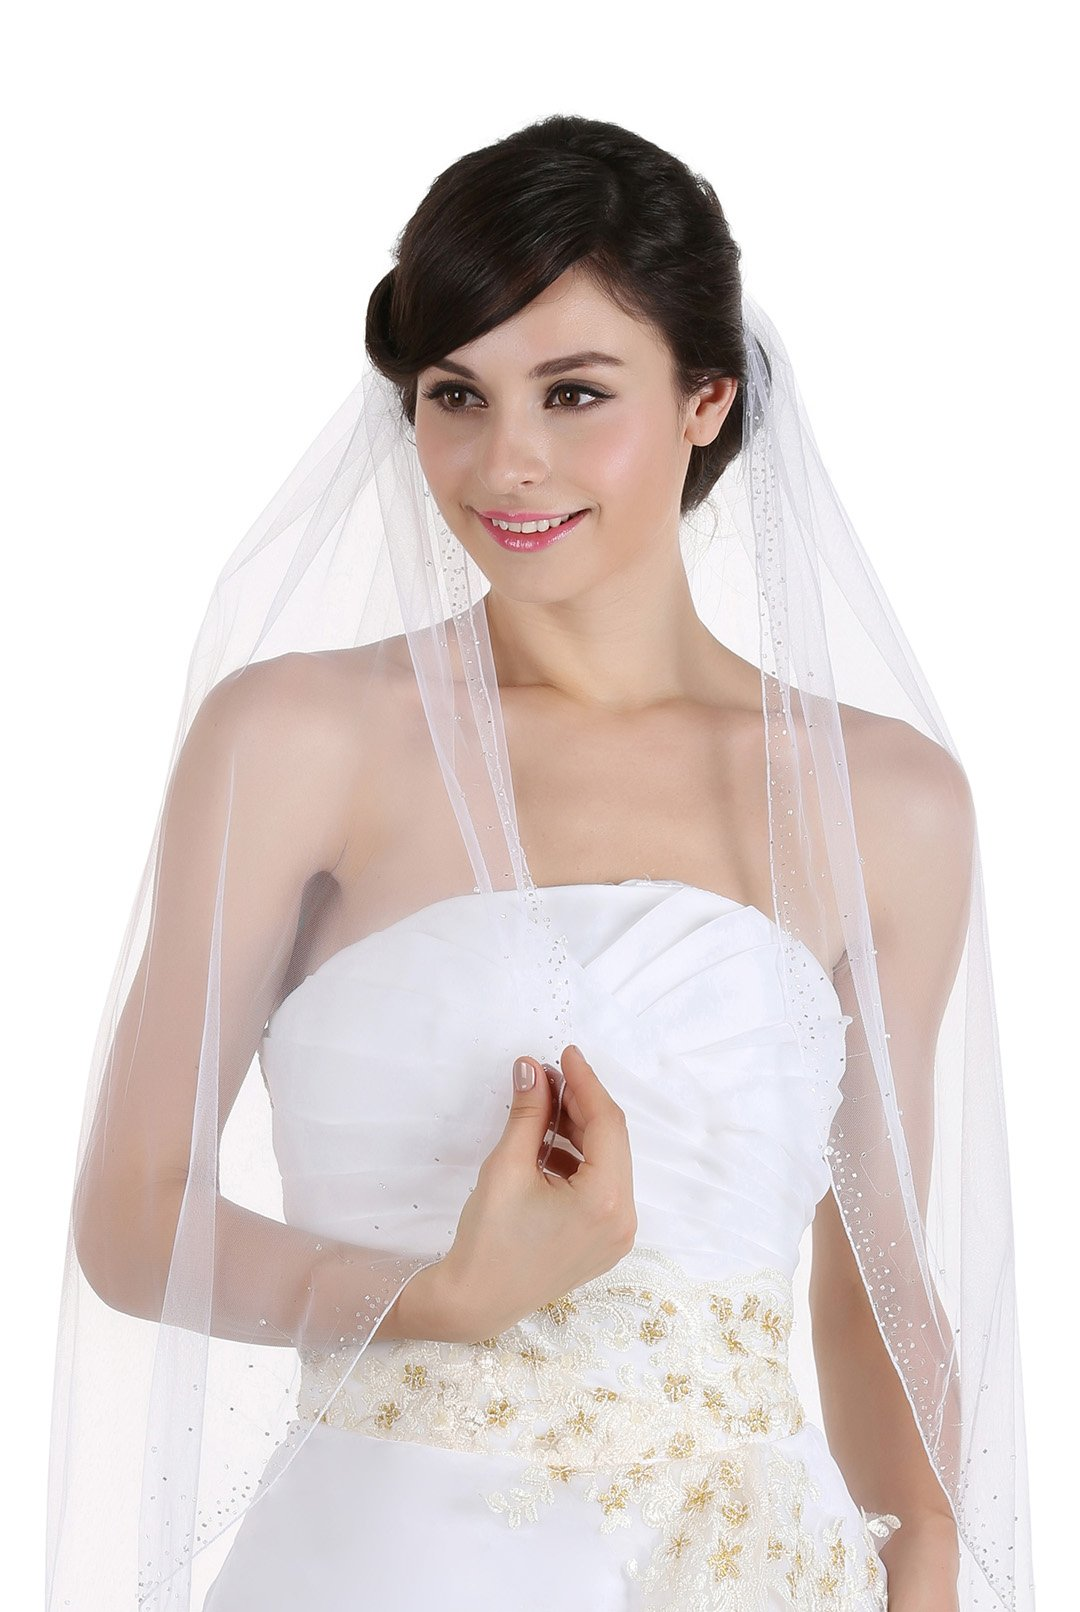 1T 1 Tier Wide Crystal Beaded Edge Veil - Ivory Cathedral Length 120'' V364